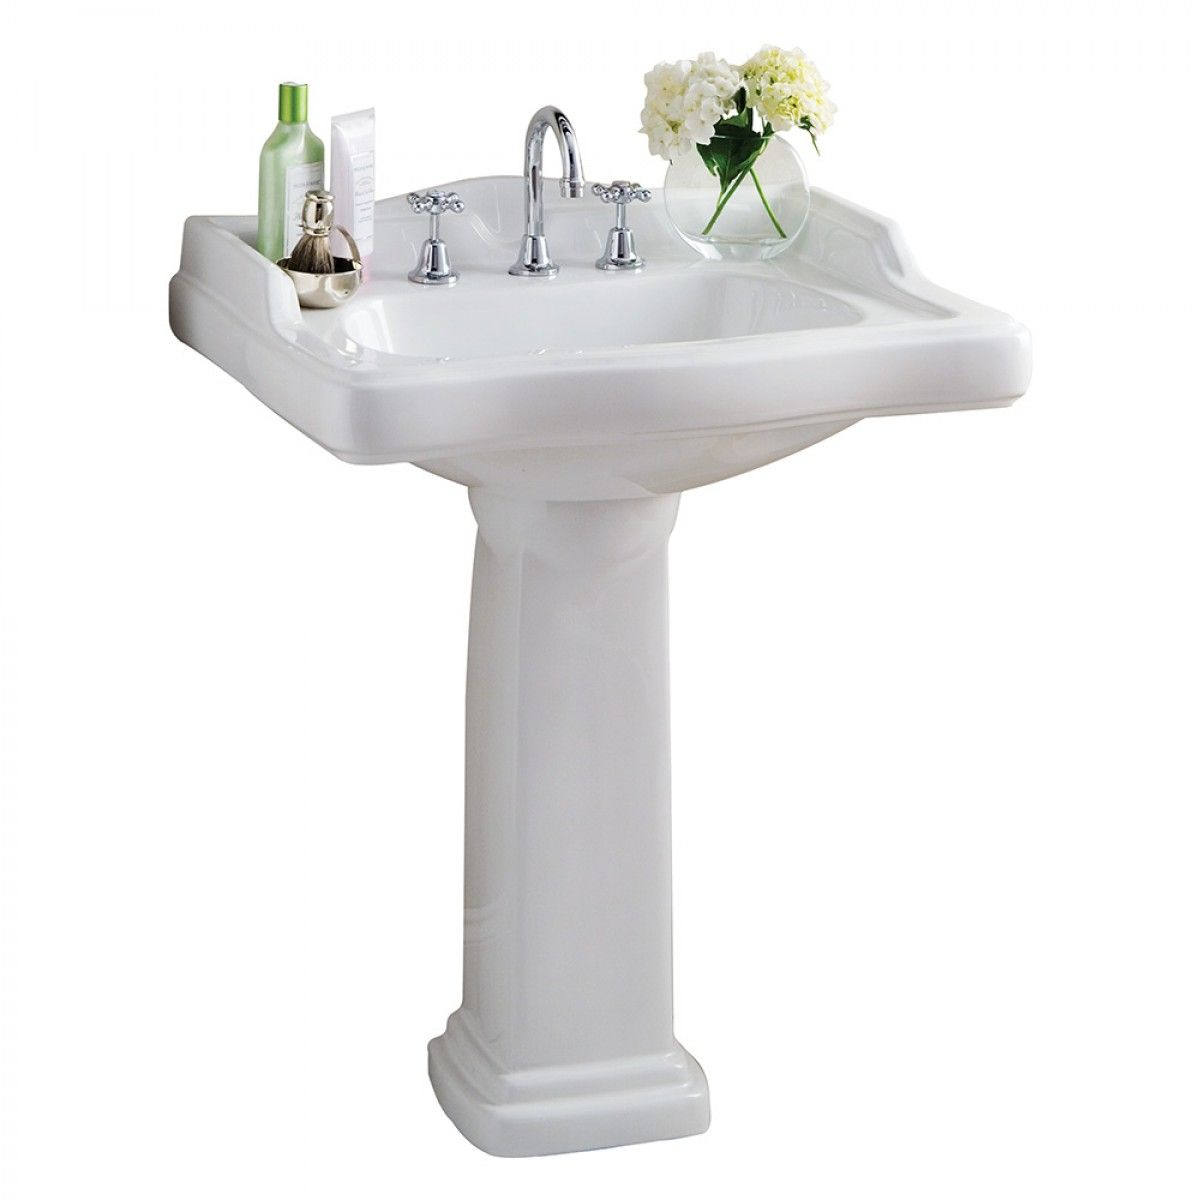 Manhatten Pedestal Basin - Basins - Bathroom